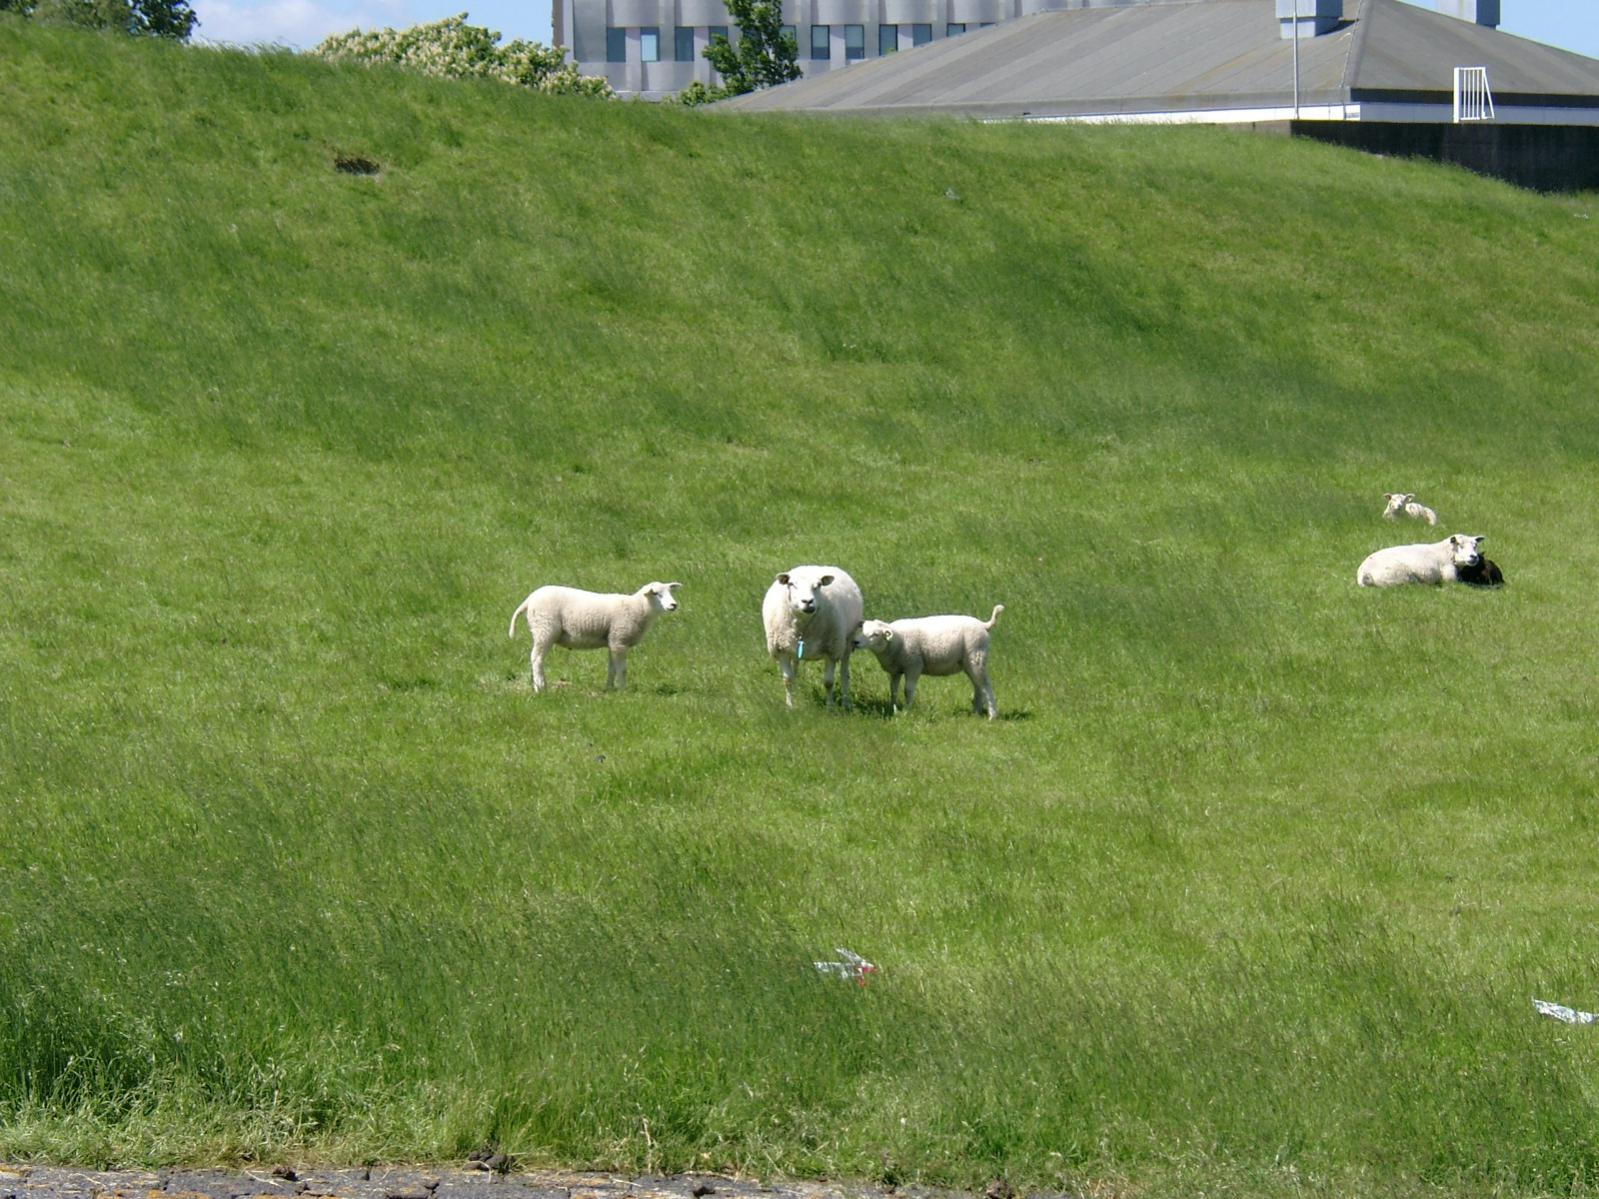 Click image for larger version  Name:NL 020613 Delfzijl sheep spotting 1.jpg Views:305 Size:306.2 KB ID:1324